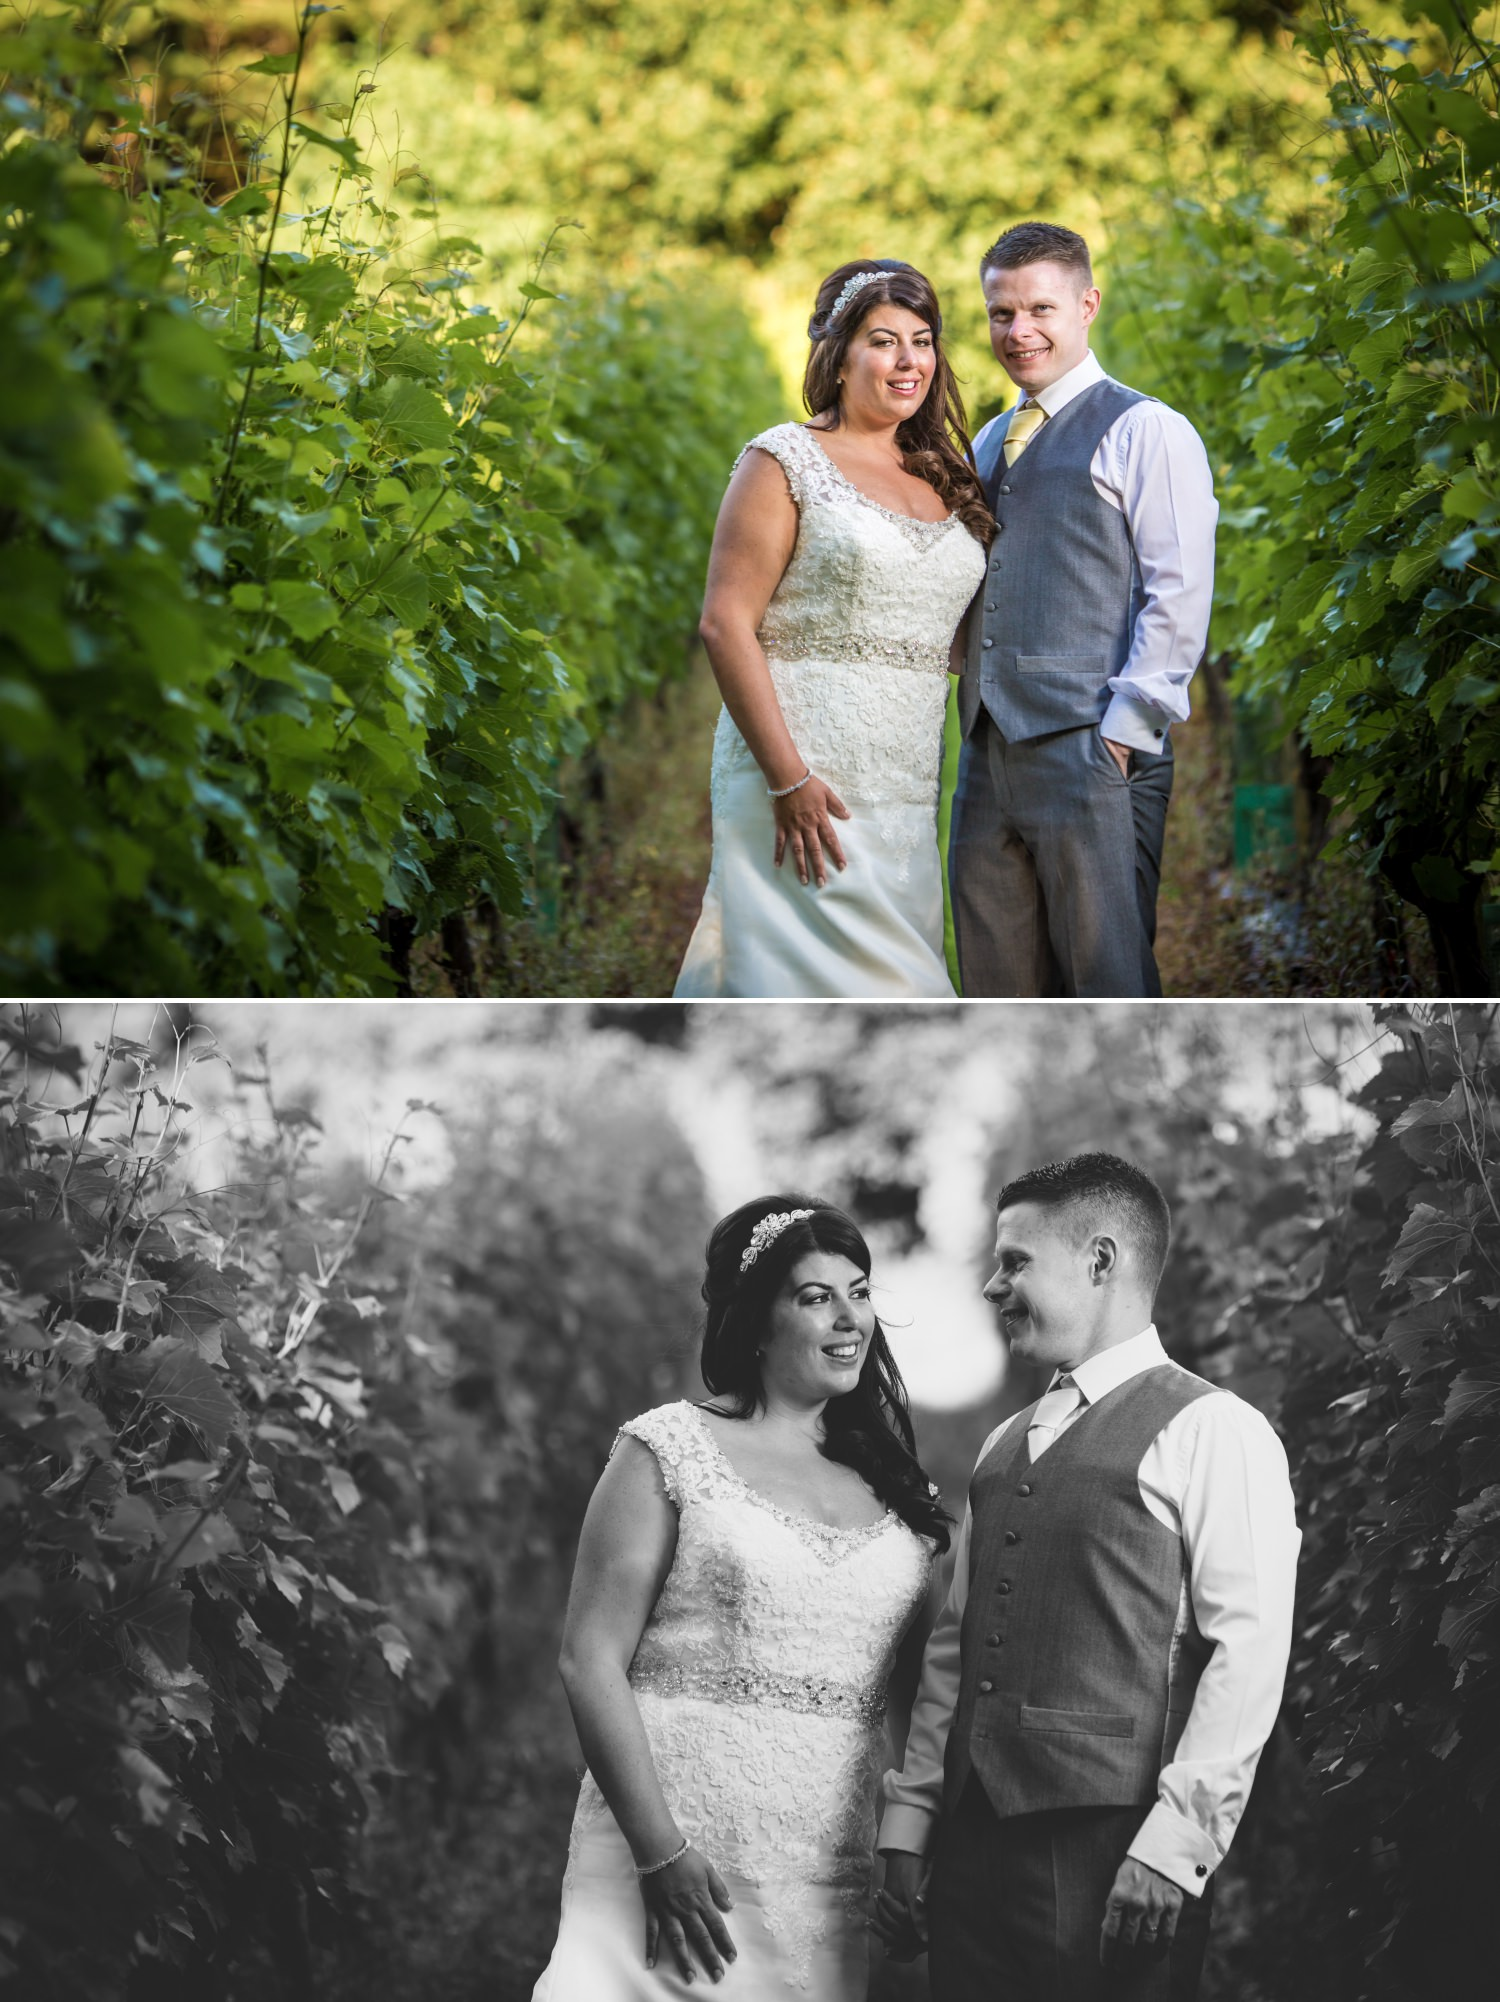 Wedding Photograph of portraits in vineyard at Carden Park